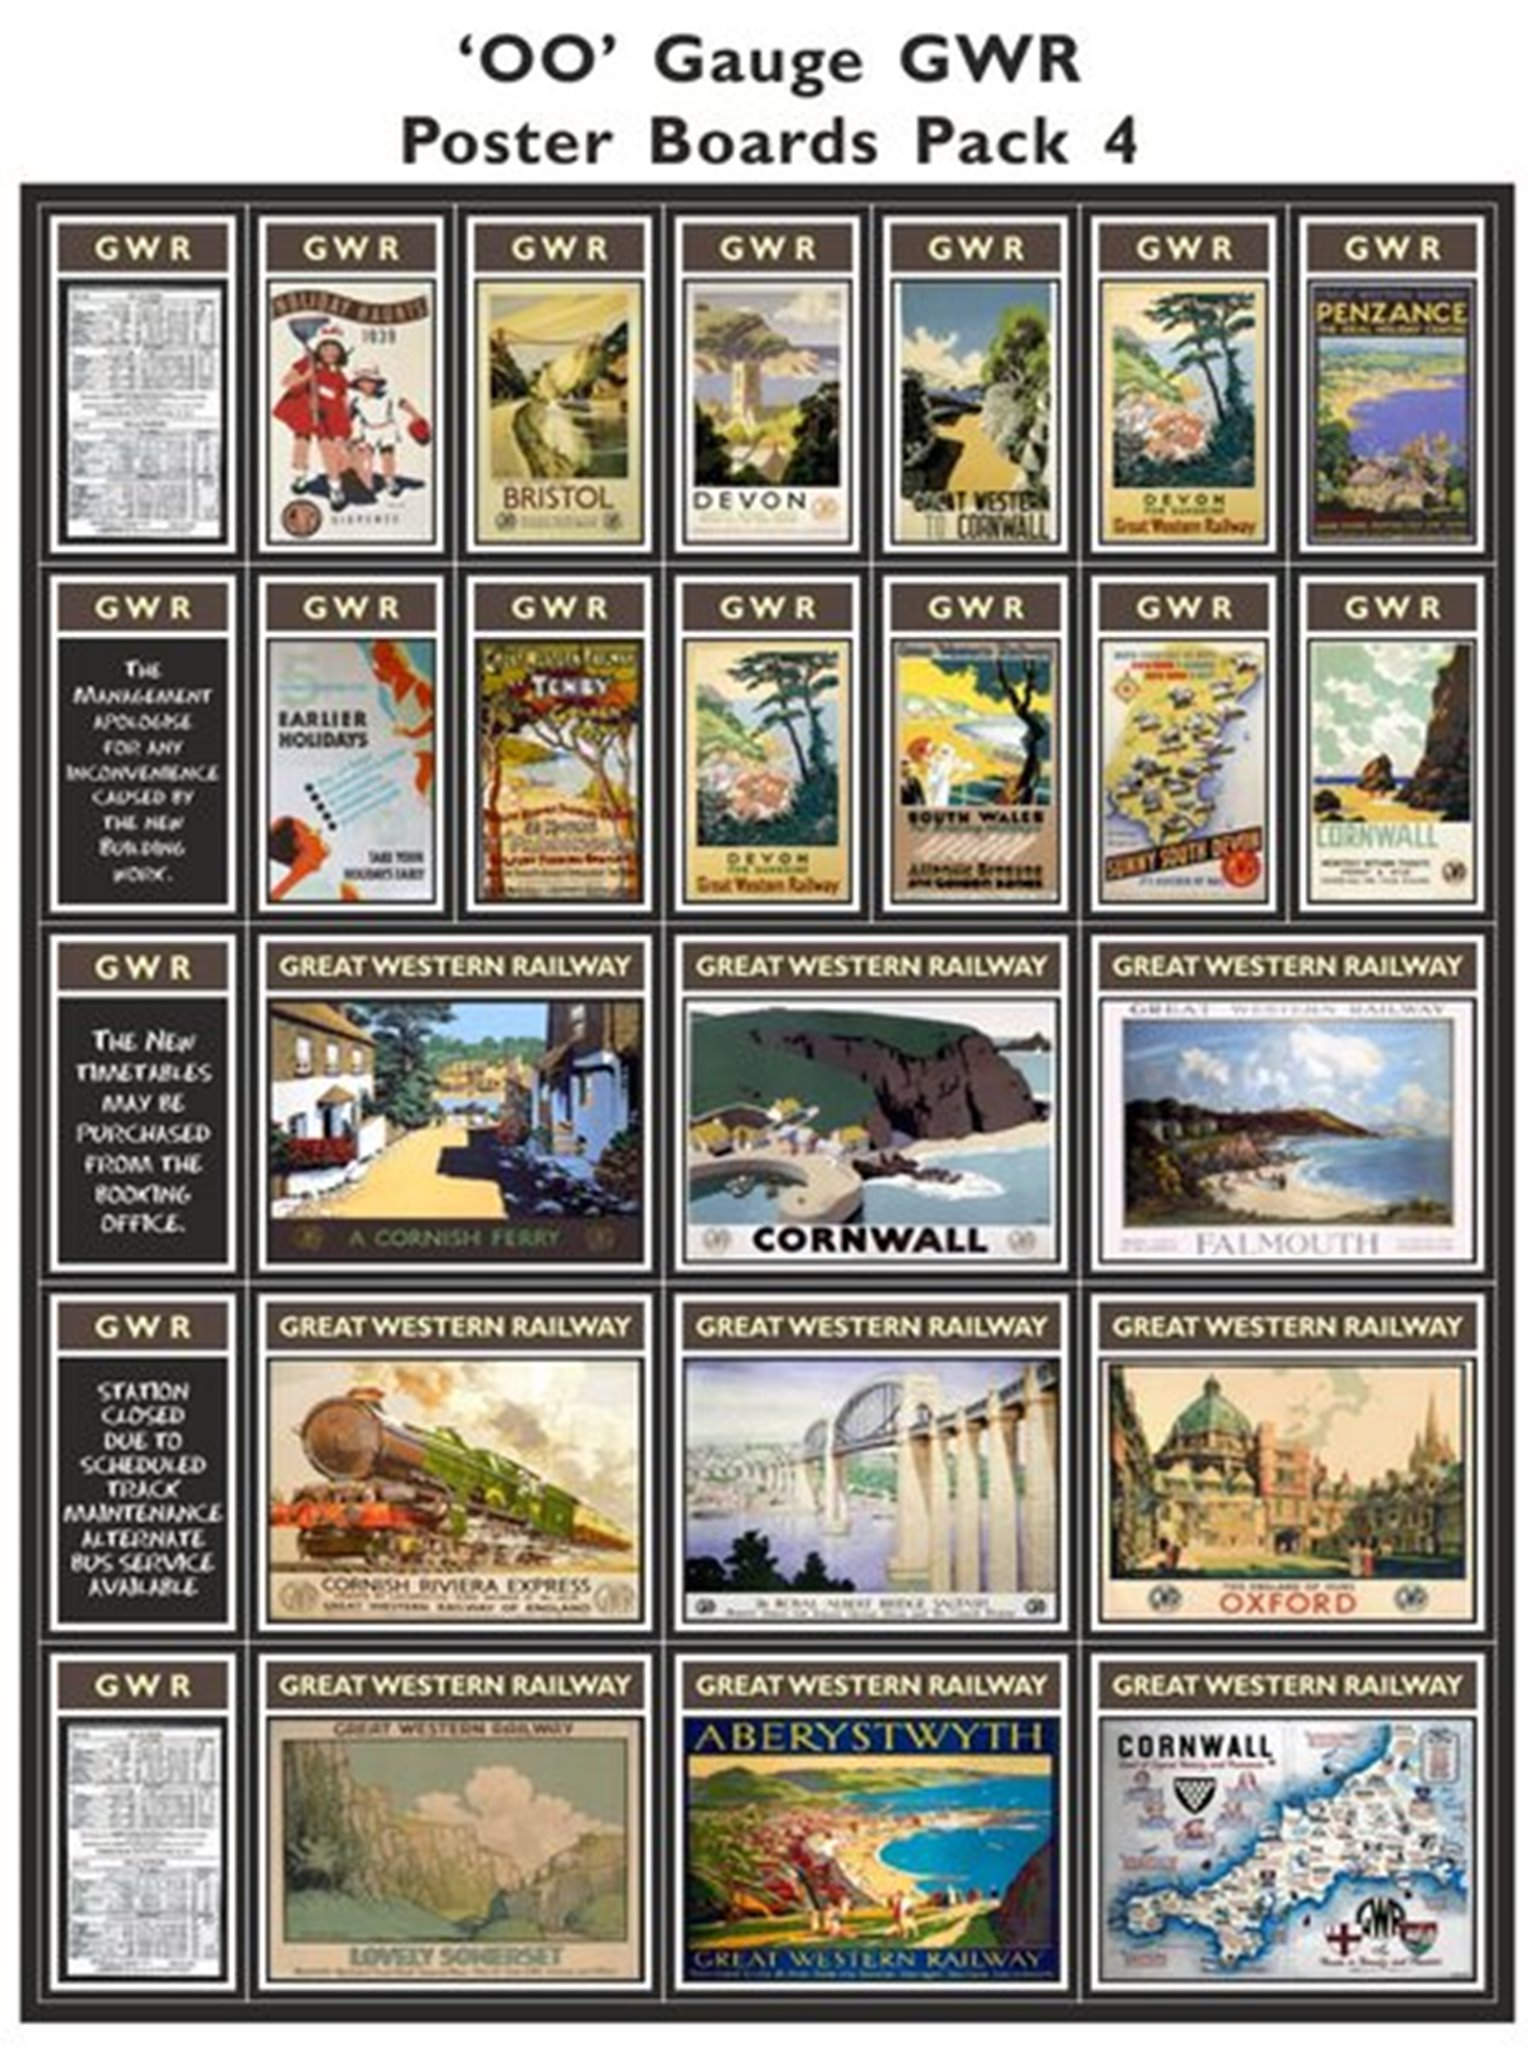 GWR Poster Boards Pack 4